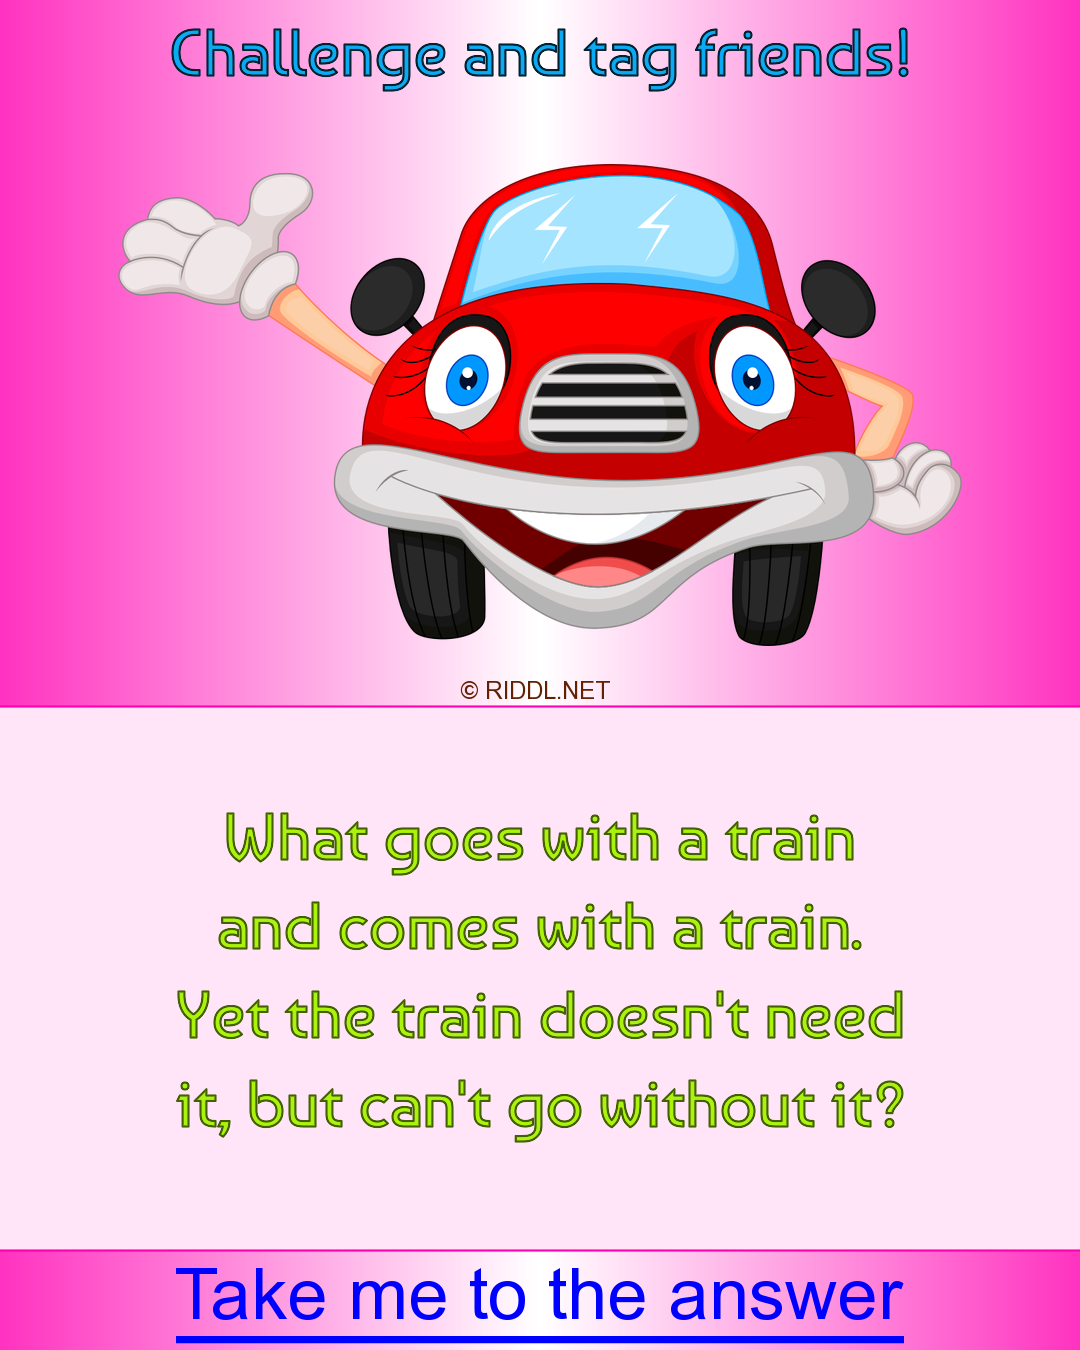 Think You Can Solve This One Don T Underestimate Your Capabilities Early Learning 101 Difficul Riddles Fun Riddles With Answers Riddles With Answers Clever [ 1350 x 1080 Pixel ]